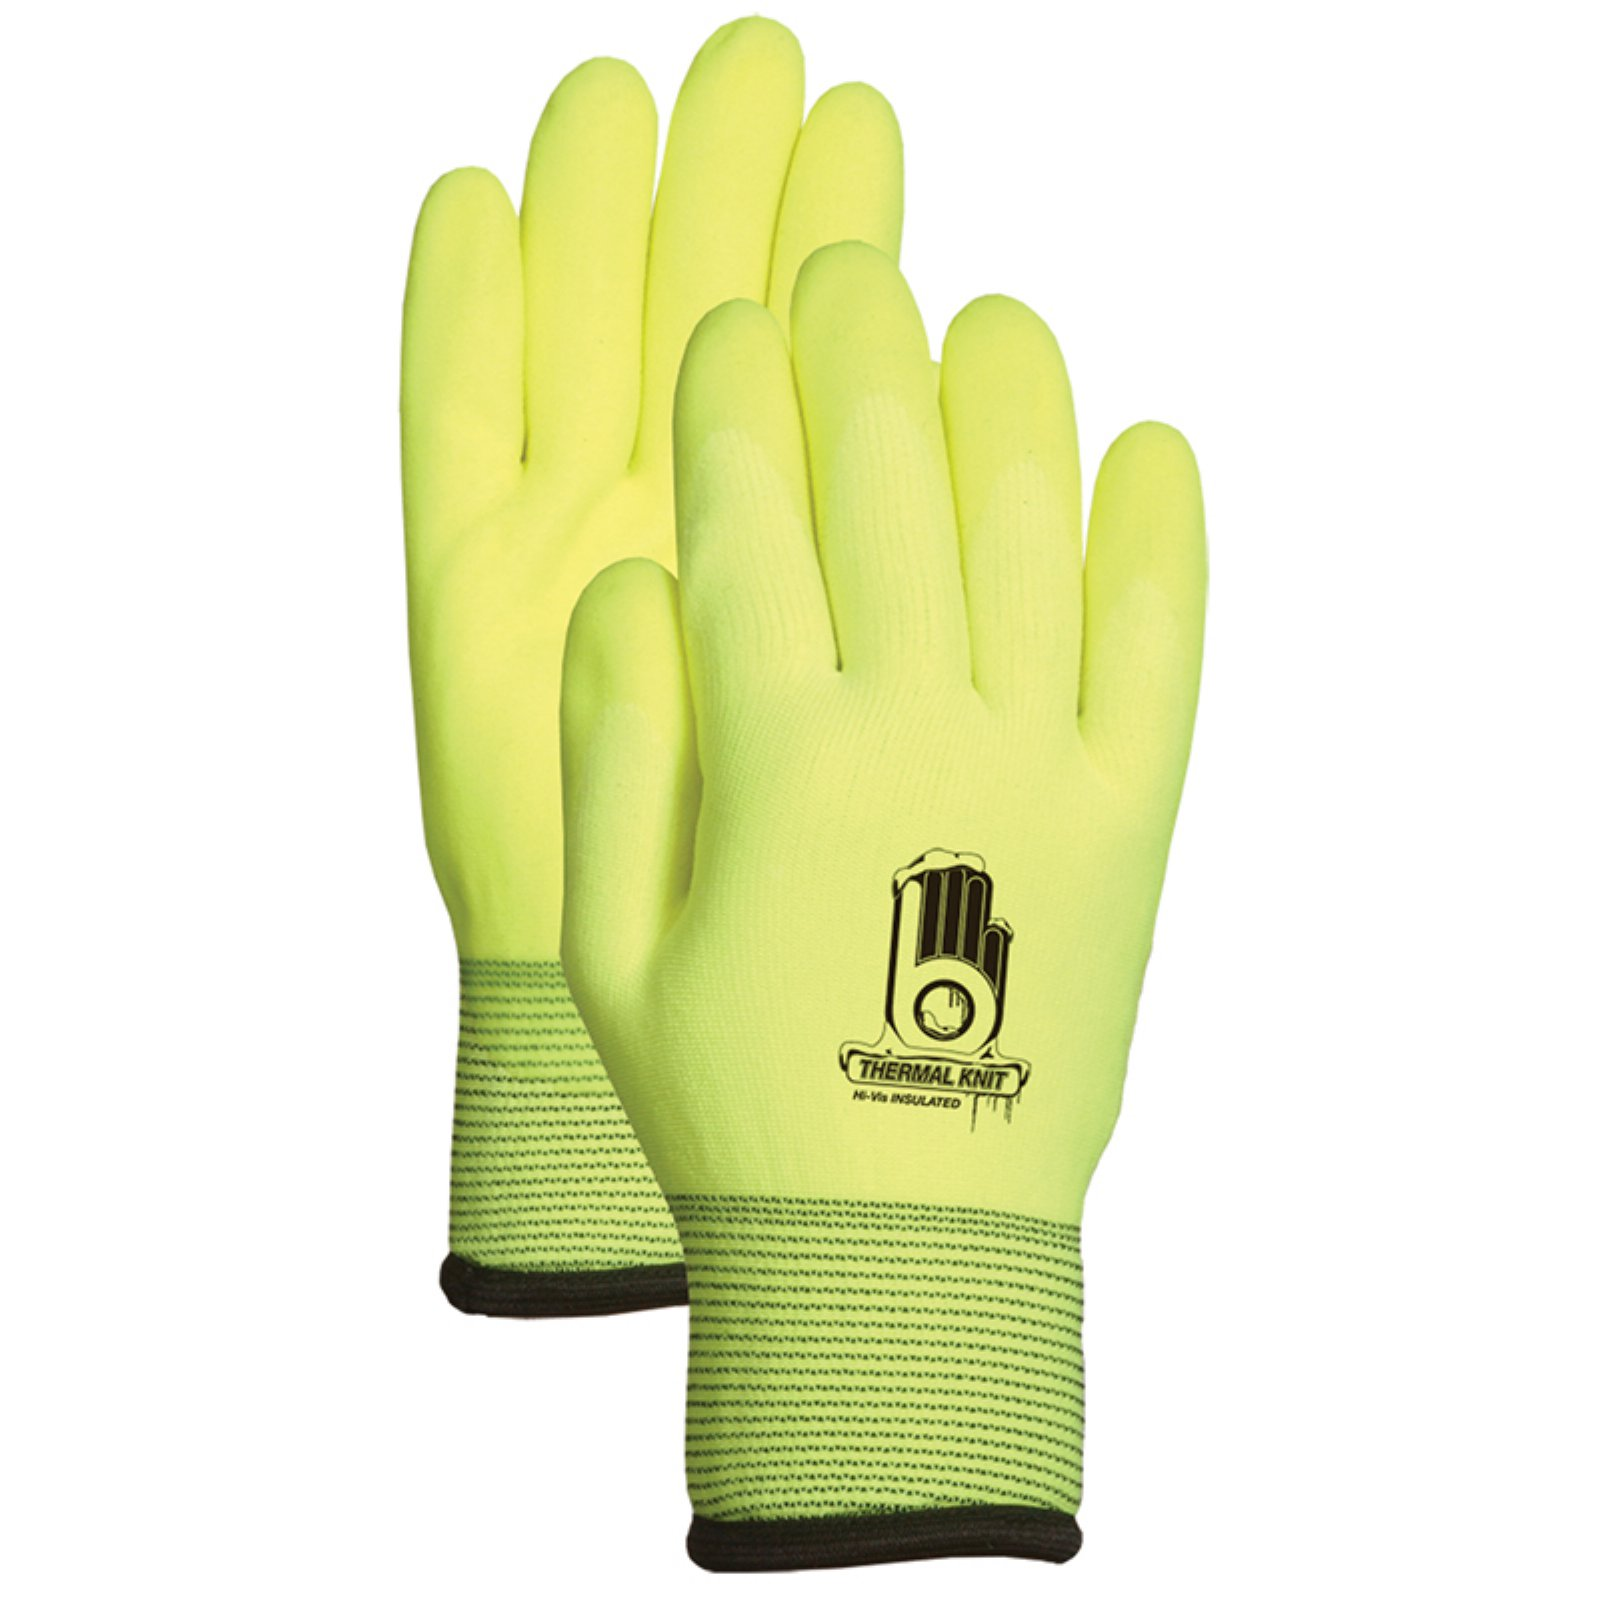 Bellingham Glove C4001L Large HPT Water Repellent Insulated Glove by Lfs Glove